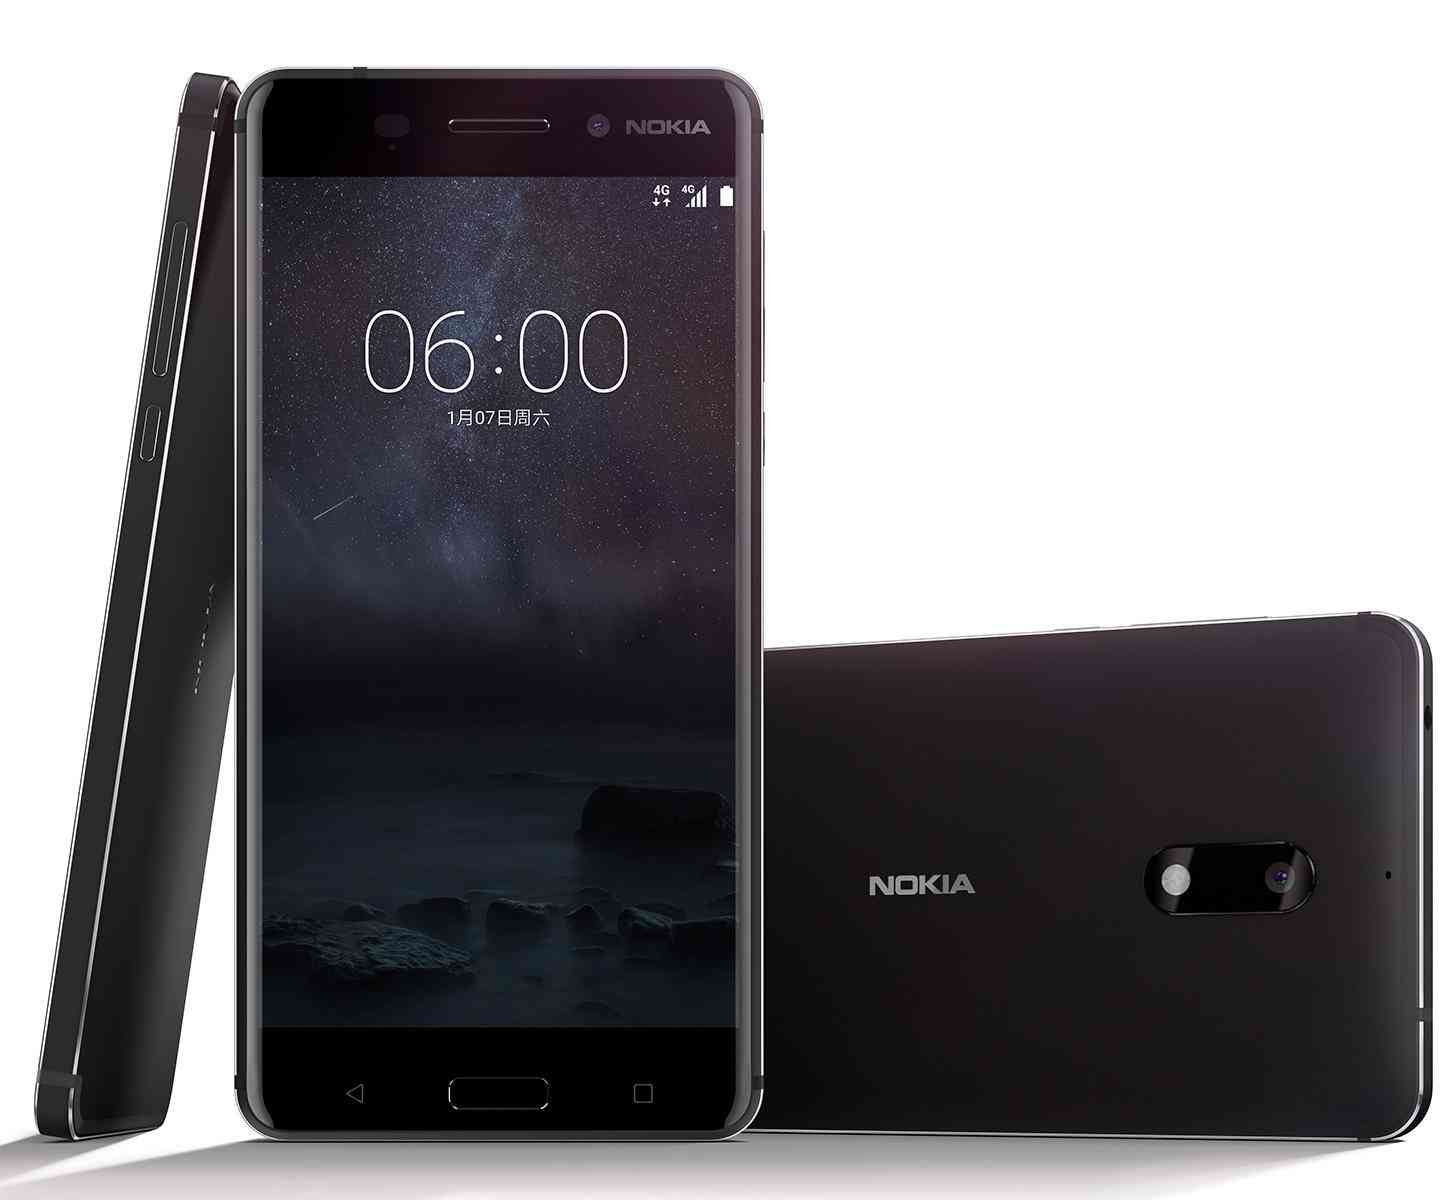 Camera Rumored Android Phones new nokia android phones and modern 3310 rumored for mwc 6 official